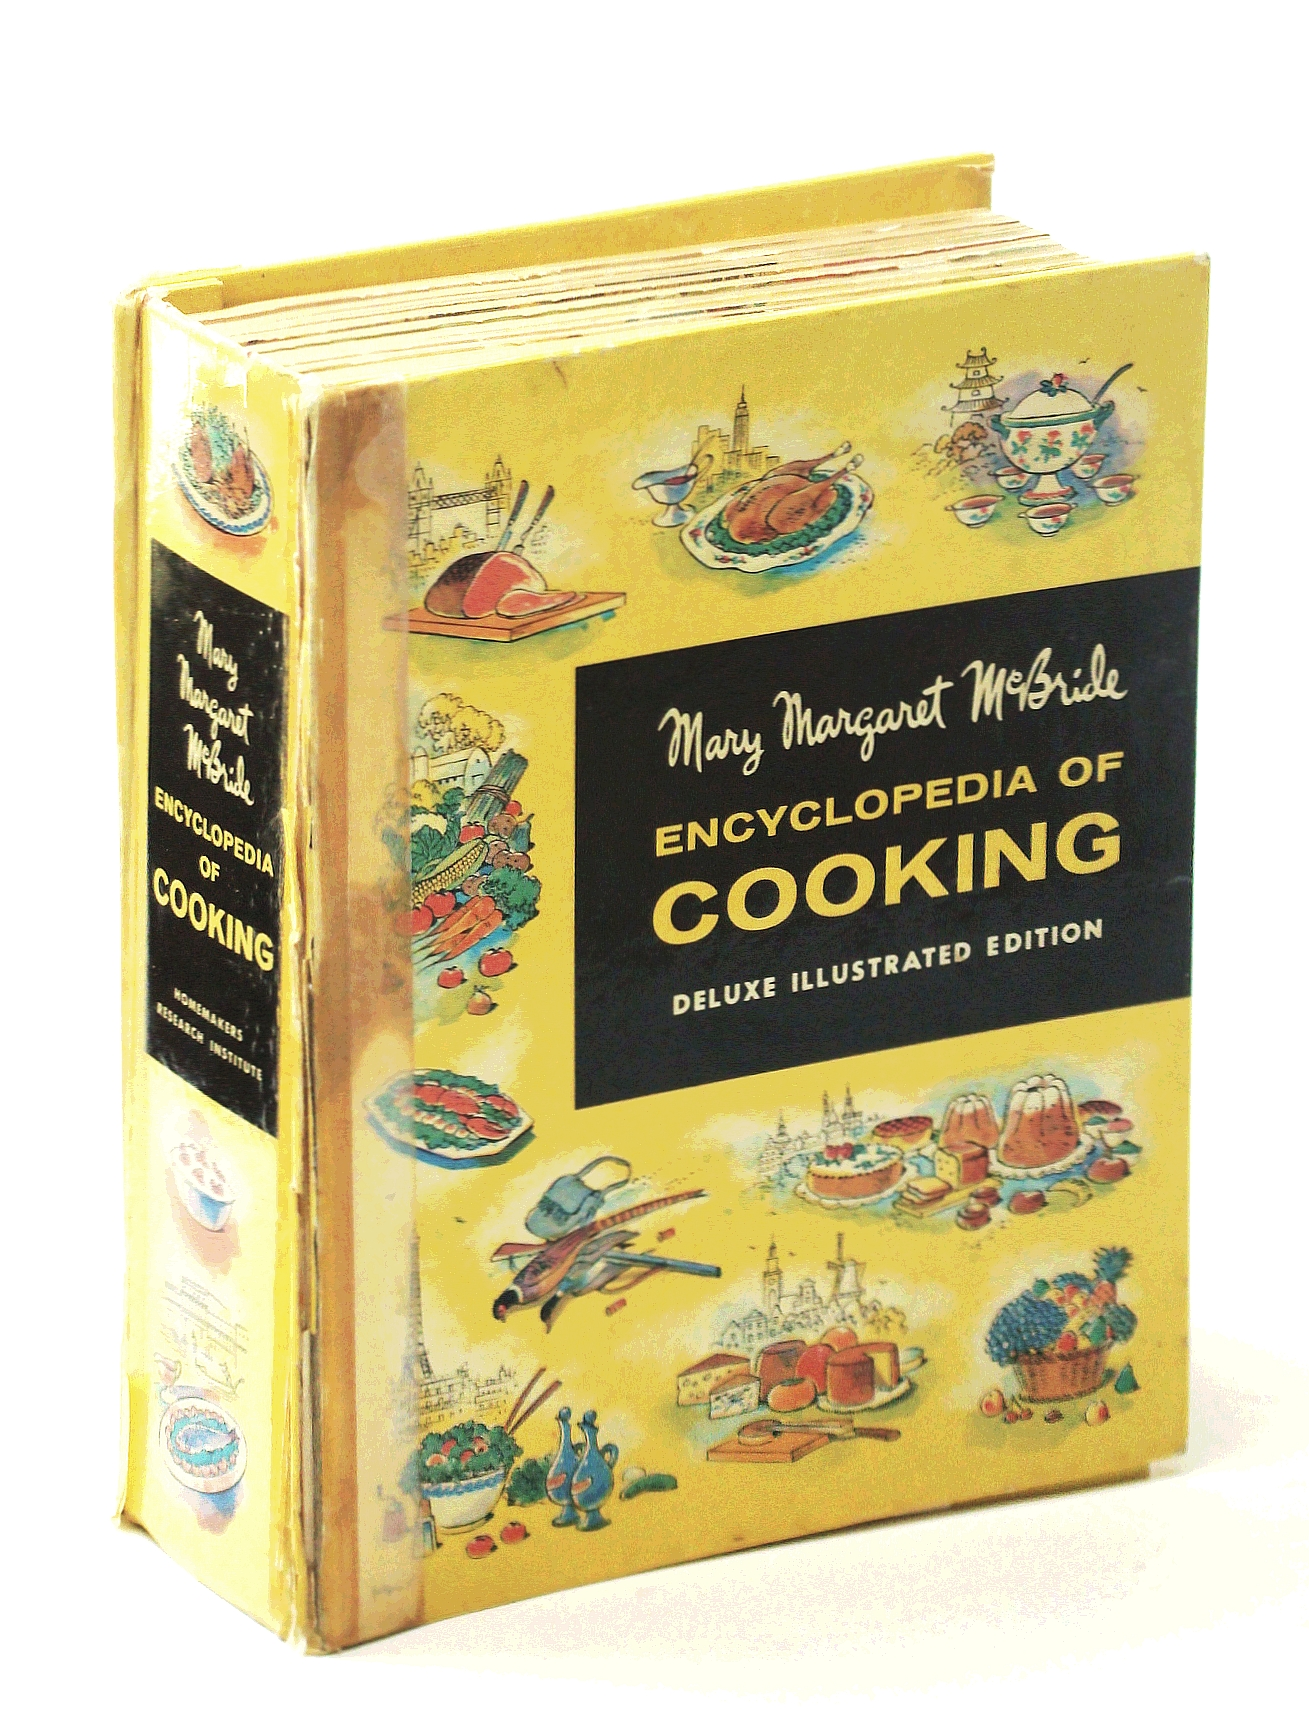 Image for Mary Margaret McBride - Encyclopedia of Cooking - Deluxe Illustrated Edition - Complete 12 Section Set